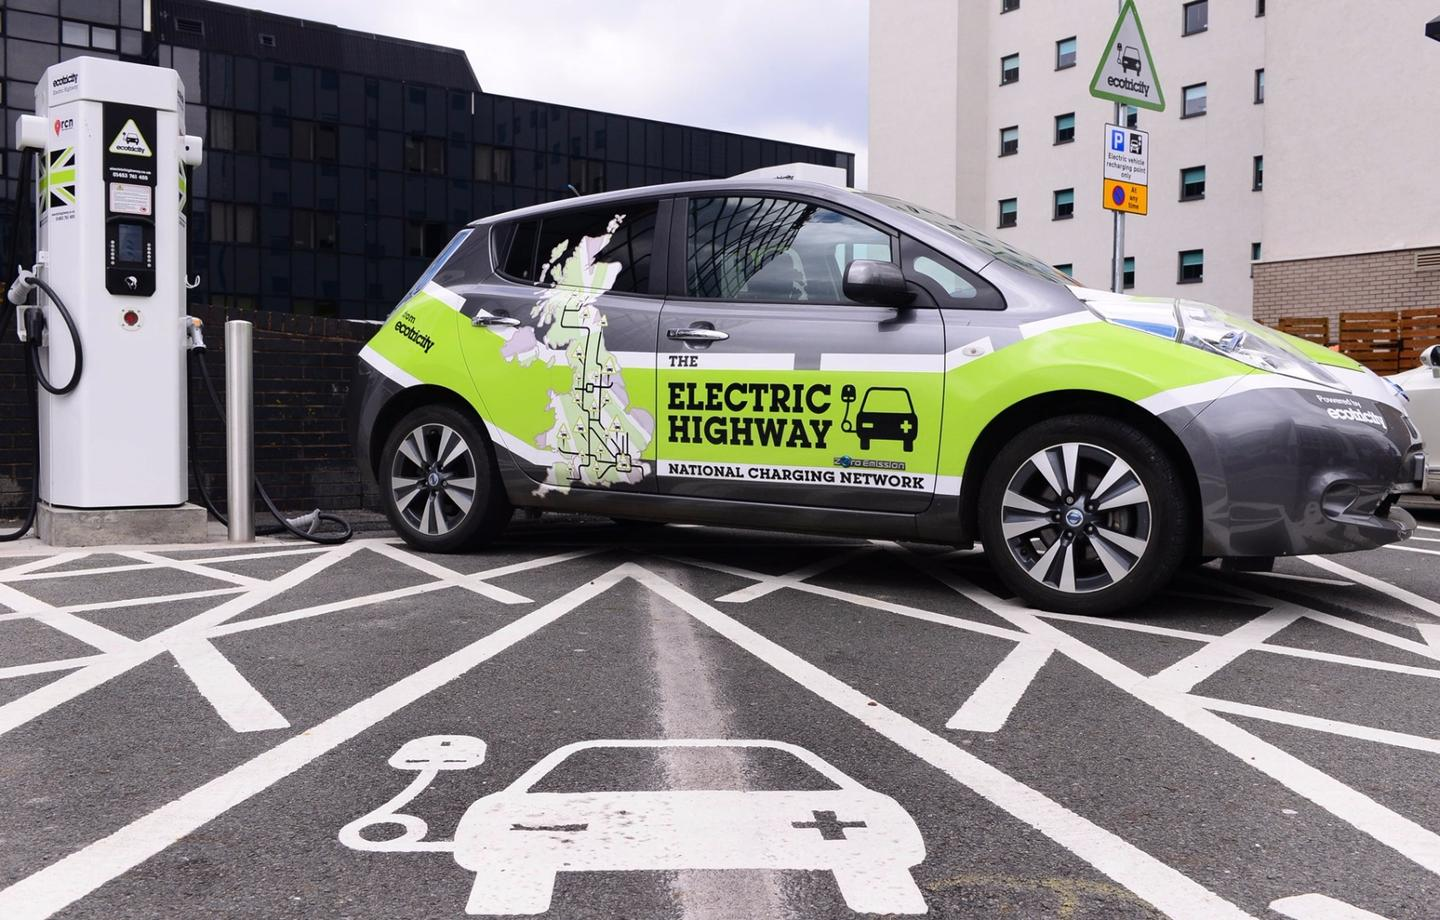 Ecotricity's Electric Highway is moving from a free-to-use network to pay-per-charge